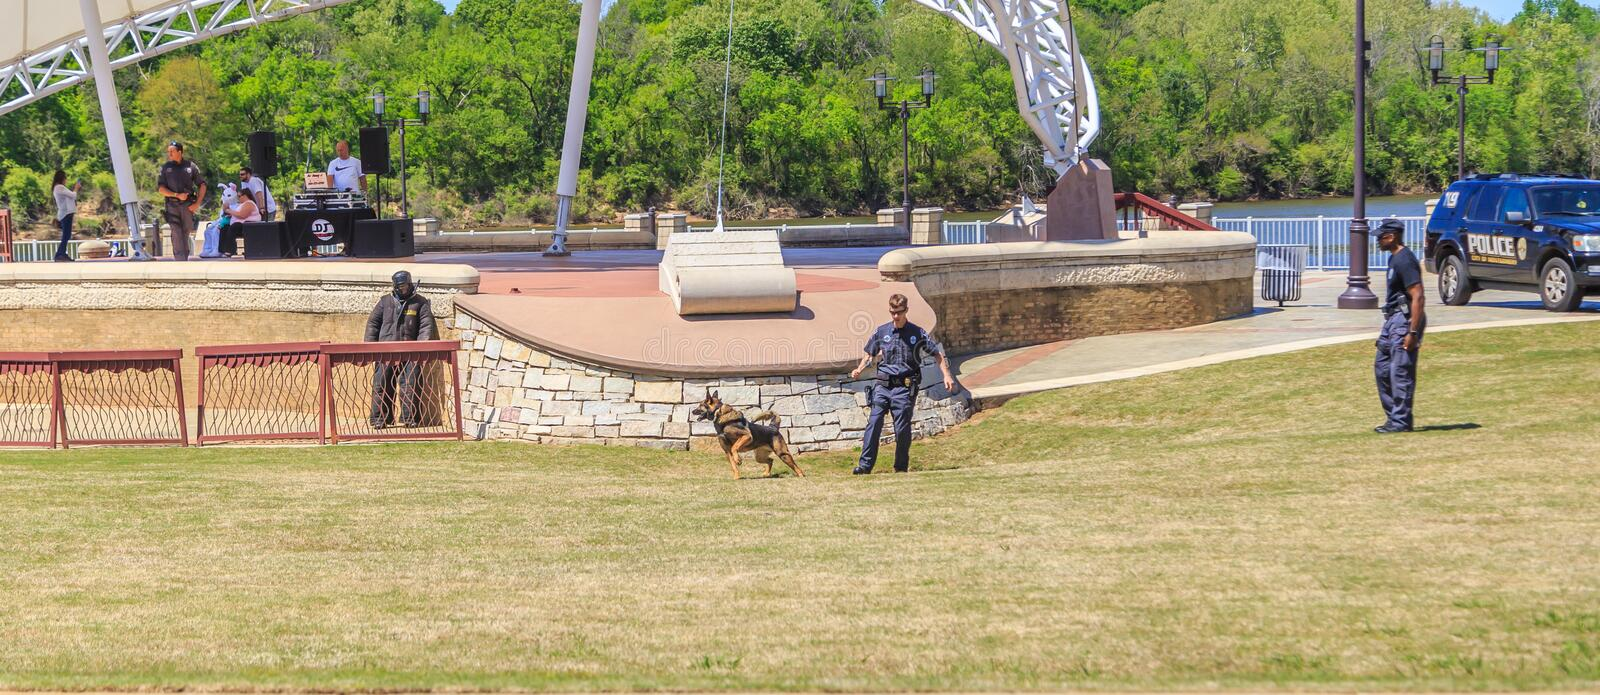 Free K-9 Police Dog Demonstration by Montgomery, Alabama Police Department. Montgomery, Alabama Police Department puts on a free public K-9 Police demonstration royalty free stock image